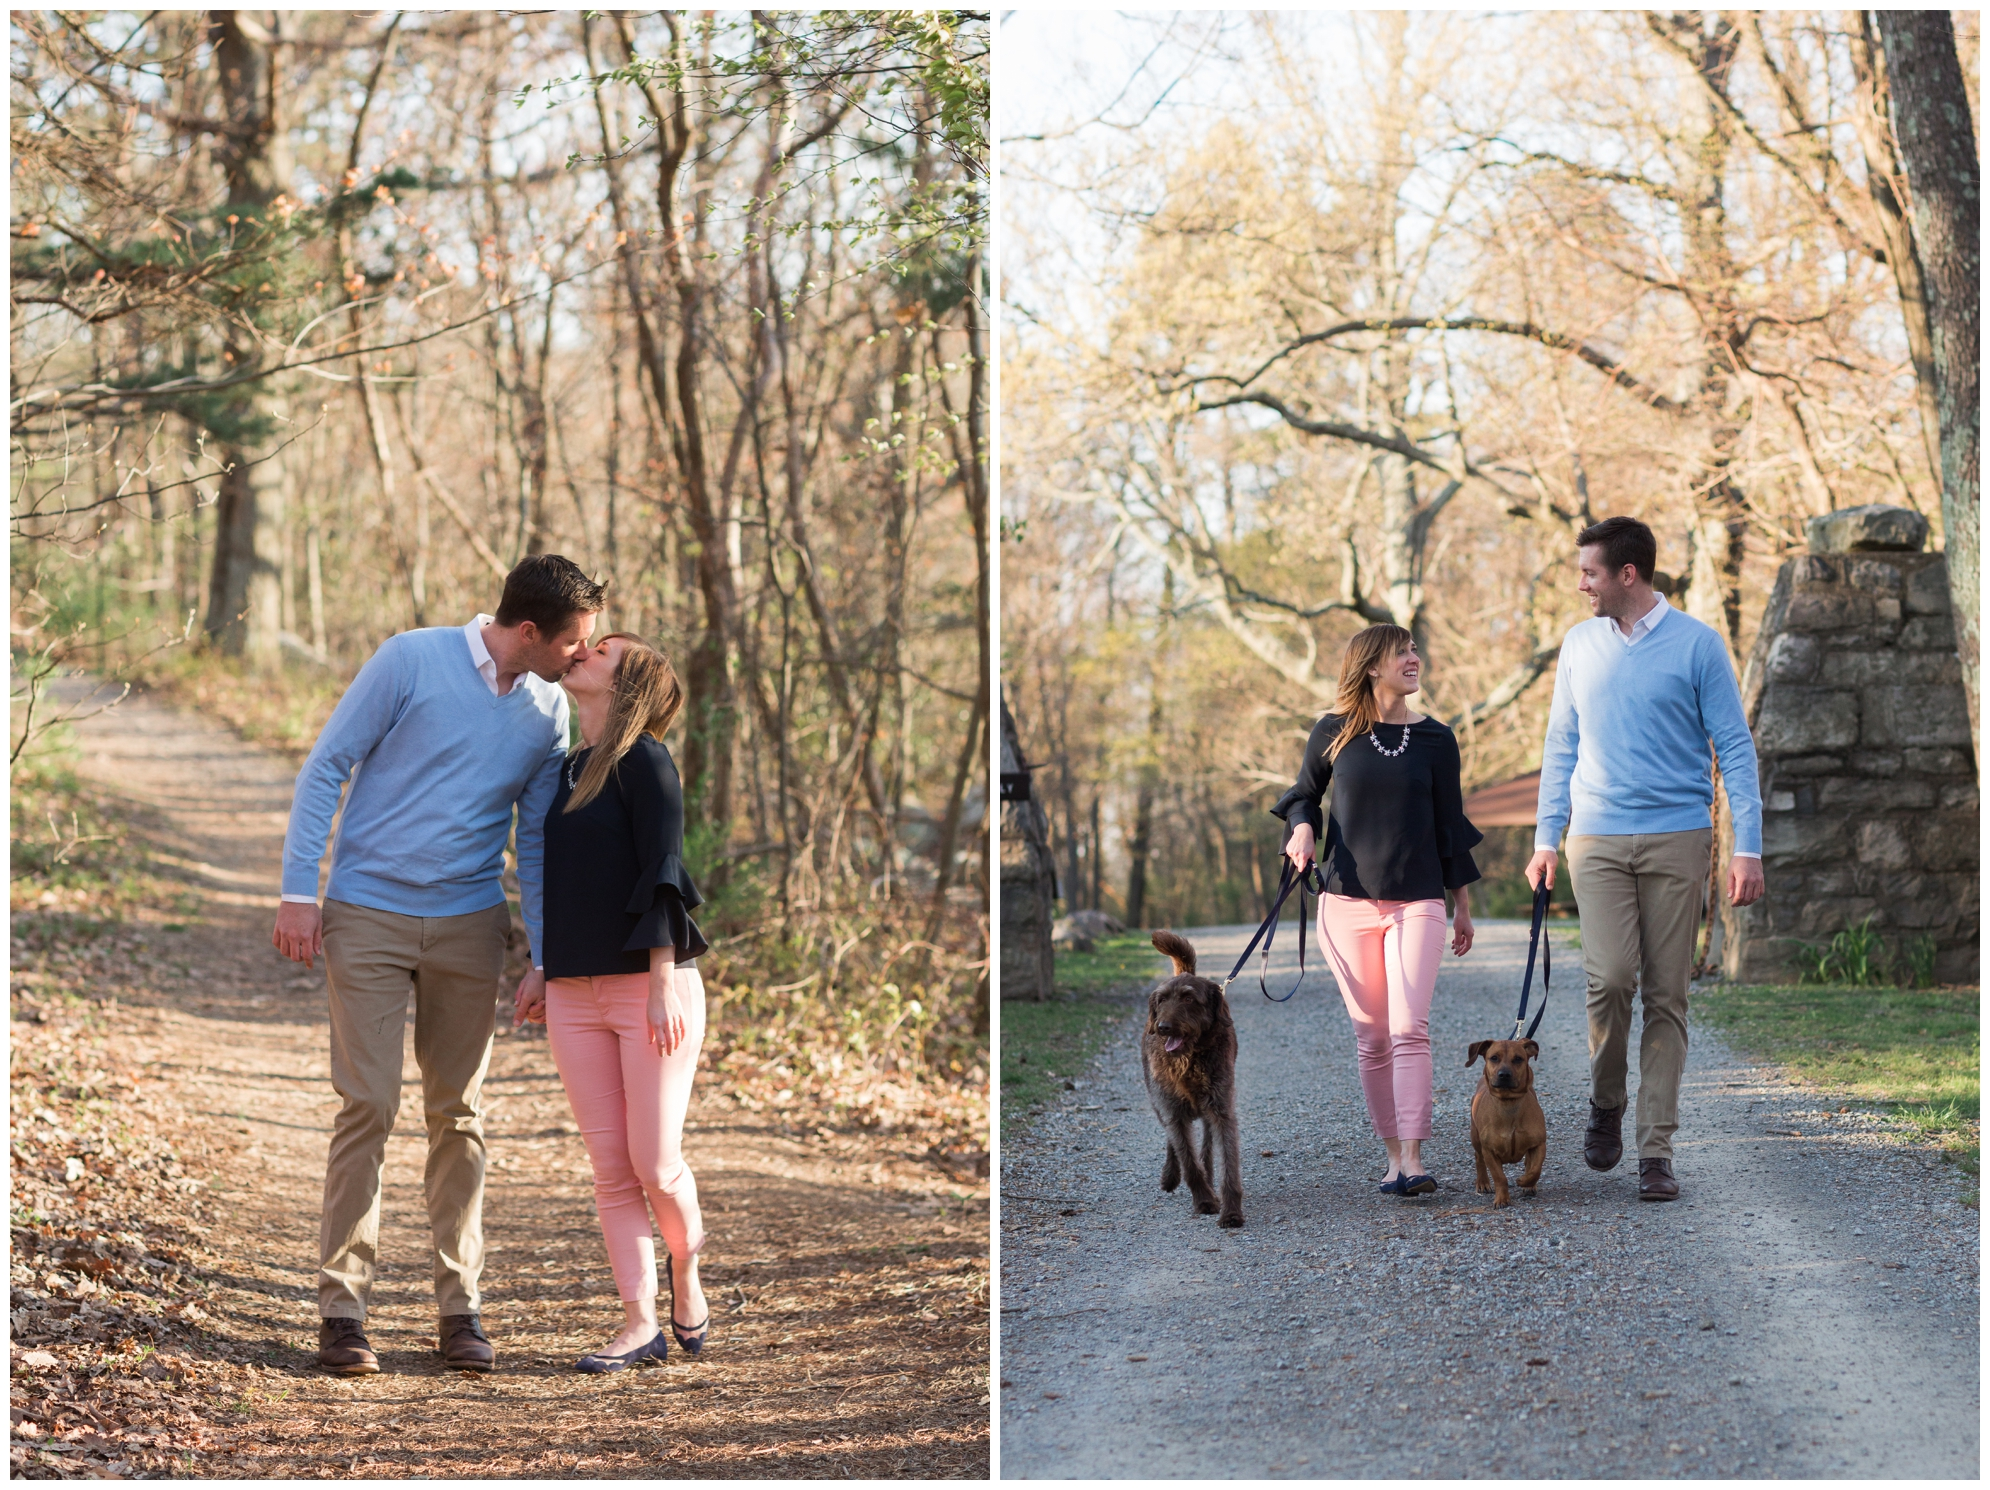 Spring engagement session at Bears Den at Bluemont, VA with two dogs